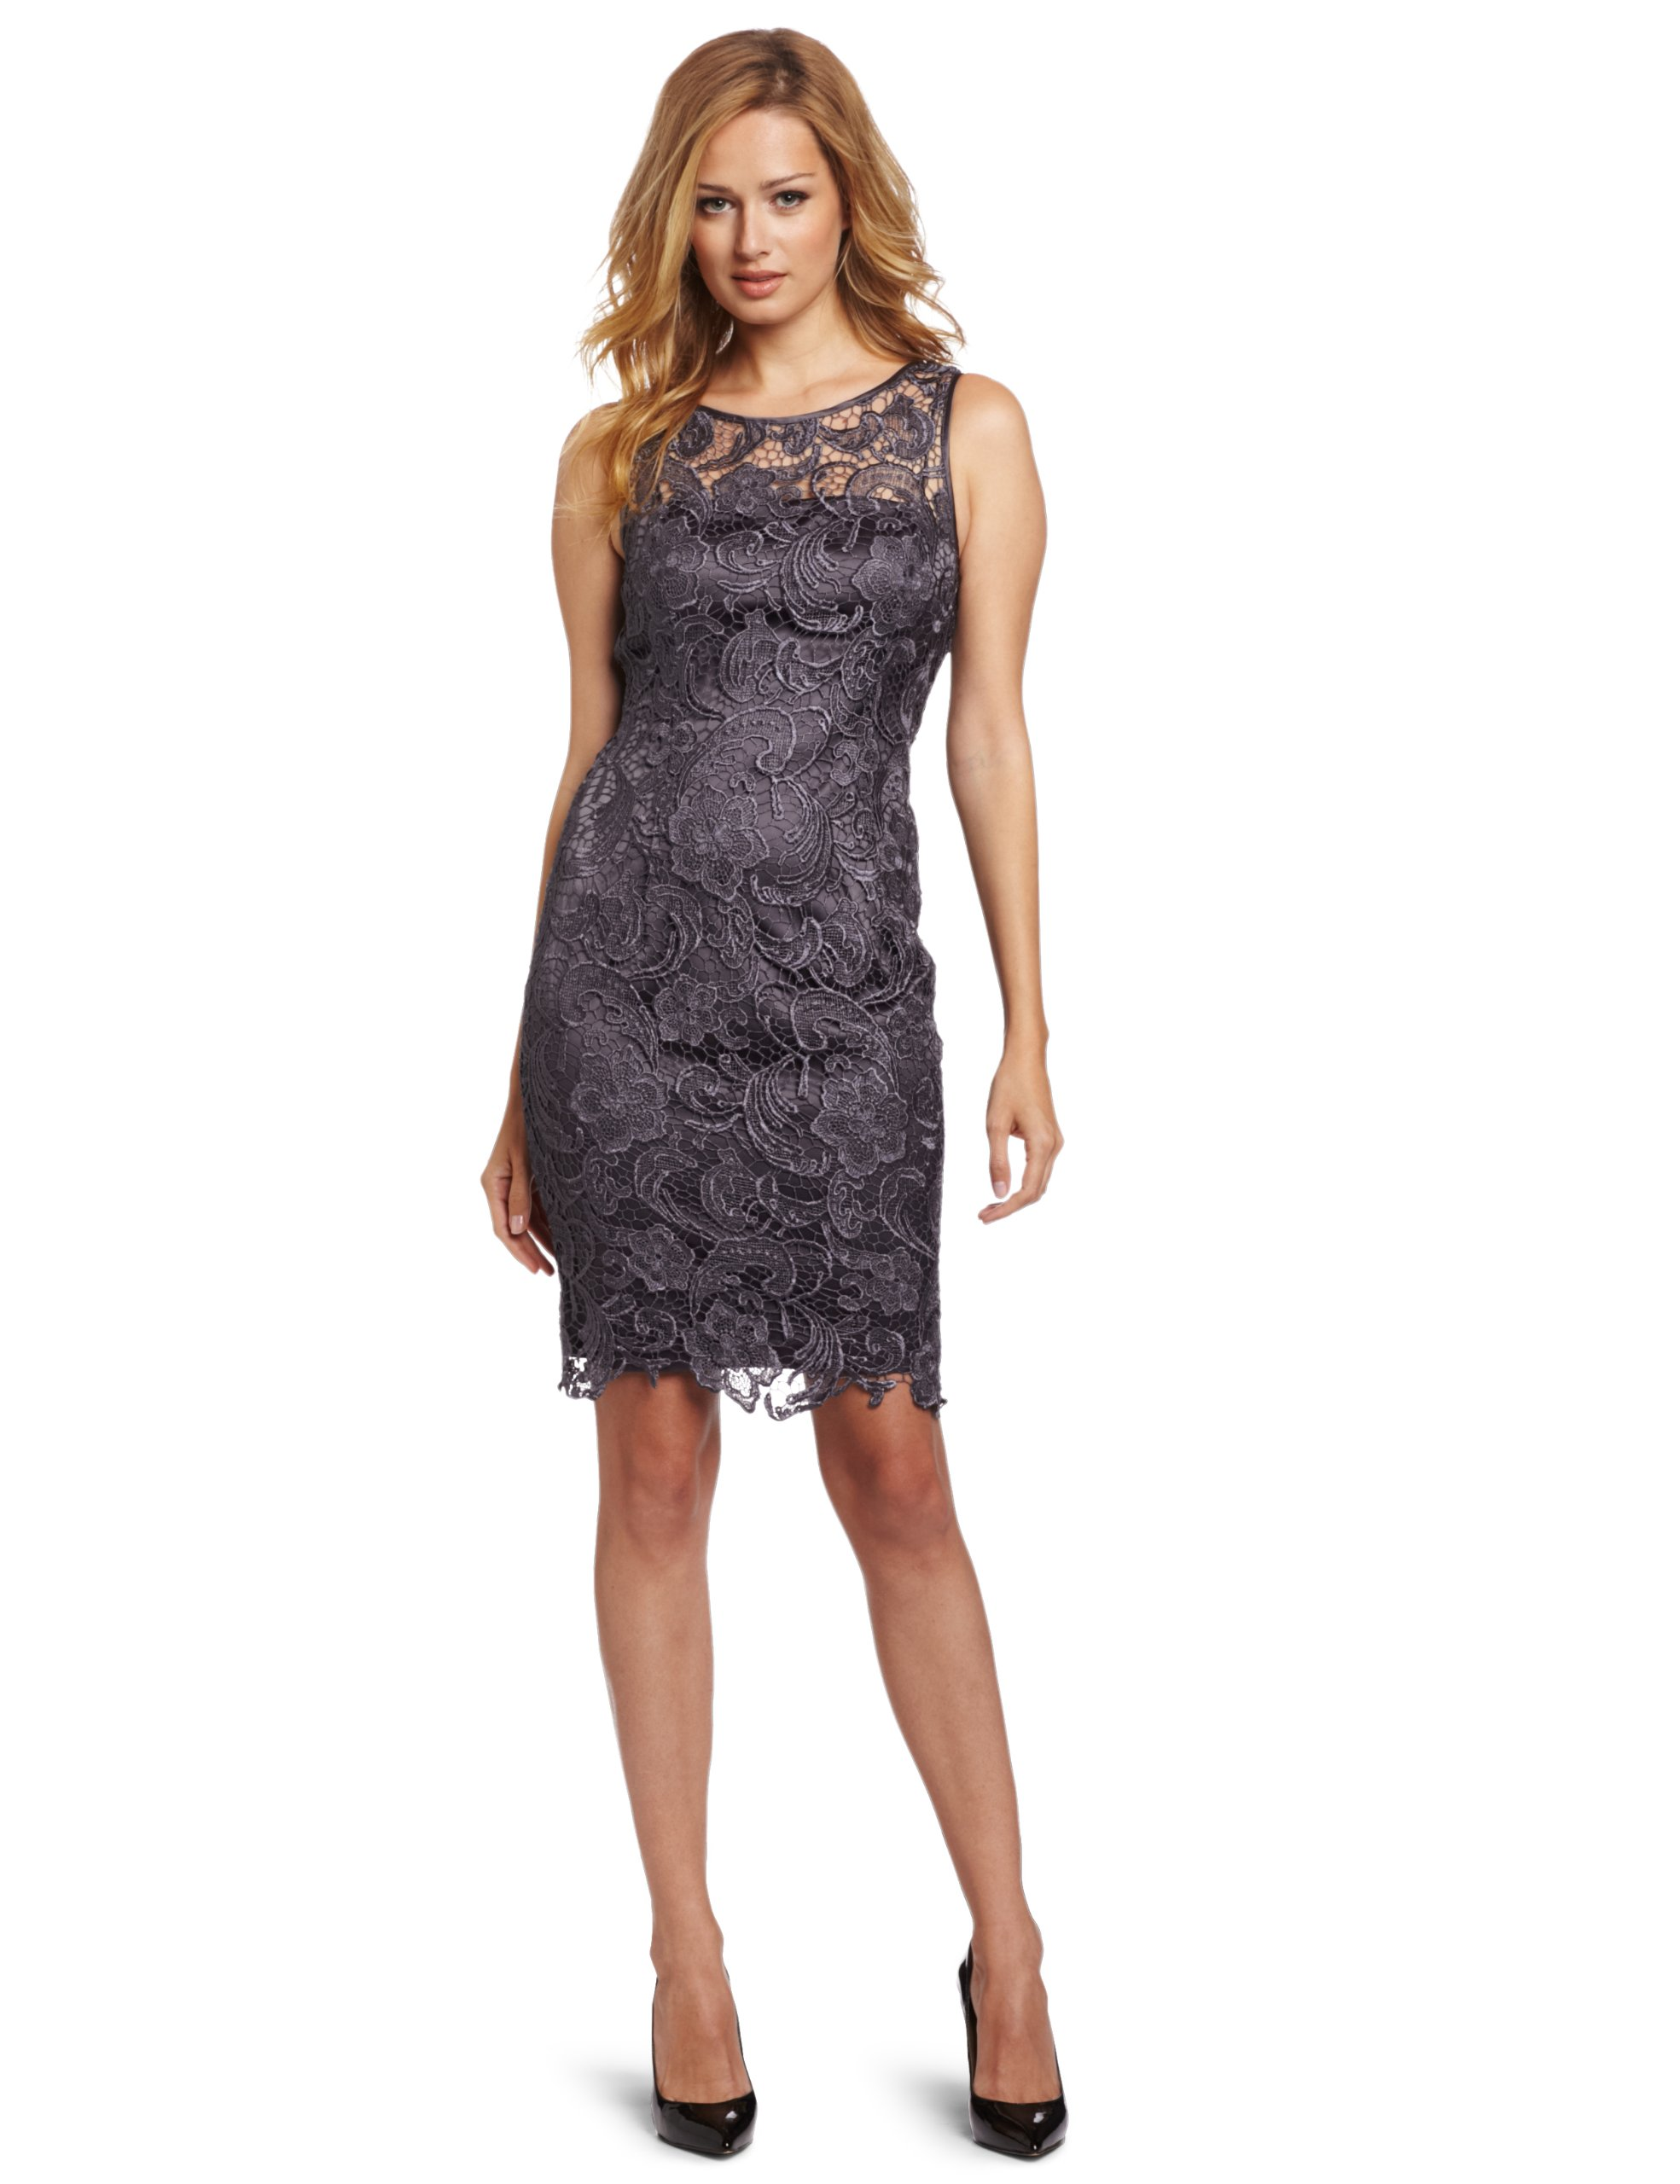 Adrianna Papell Women's Illusion Neckline Lace Dress, Charcoal, 10